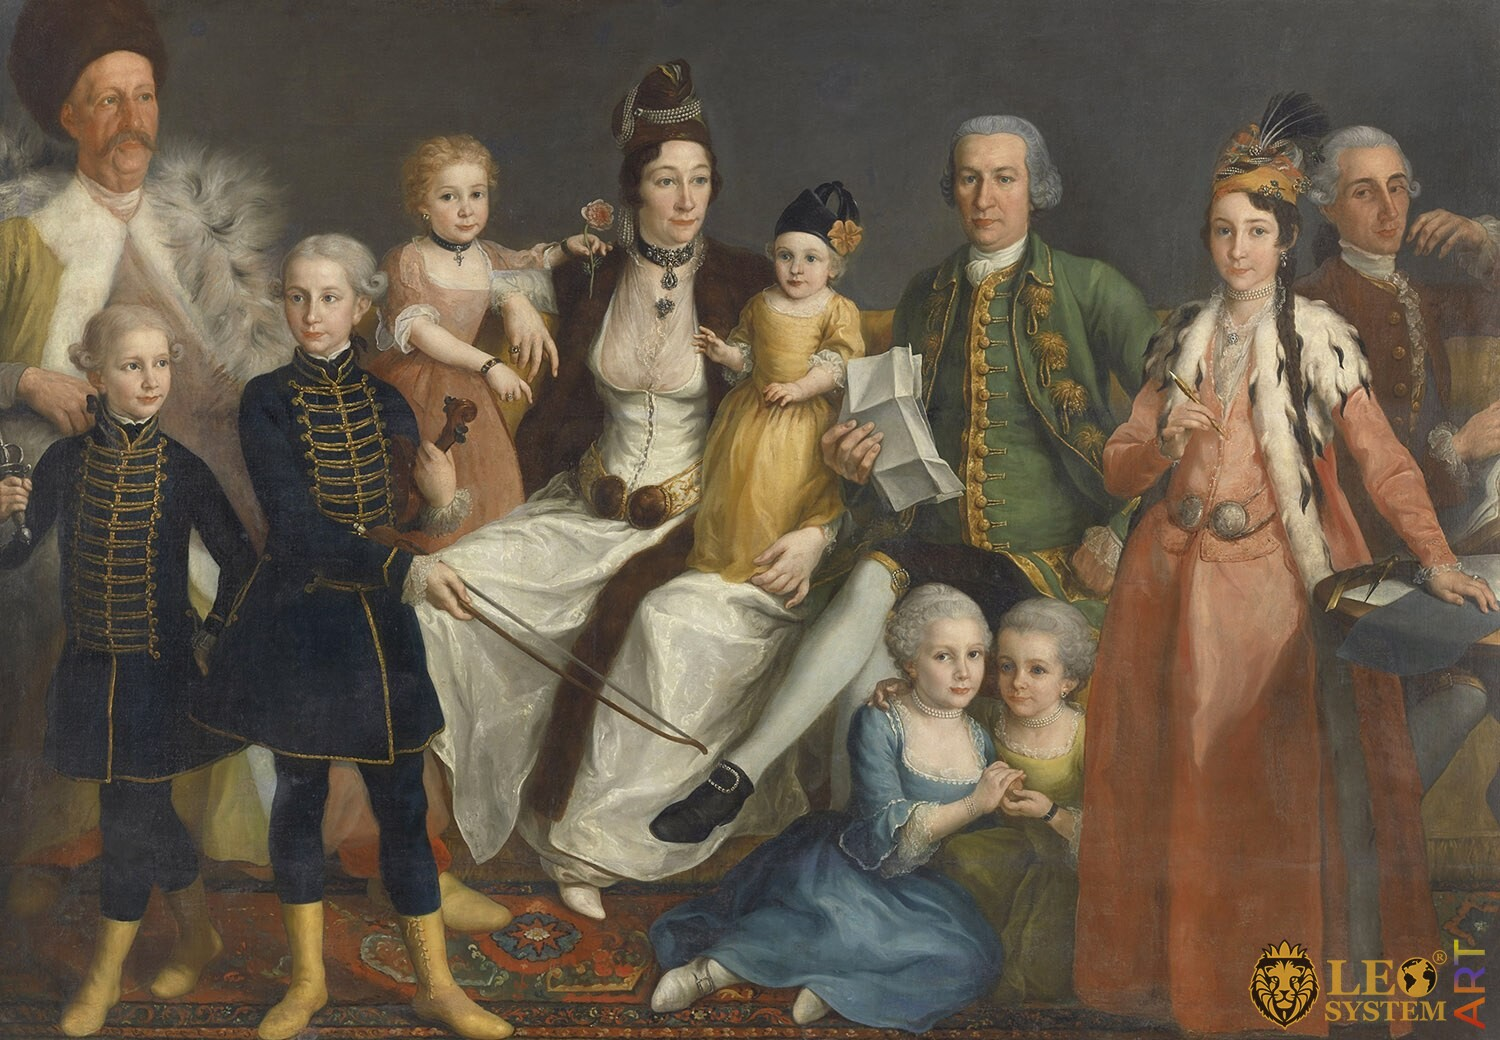 David George van Lennep, Senior Merchant of the Dutch Factory at Smyrna, and his Wife and Children, Artist: Antoine de Favray, 1769-1771, Amsterdam, Netherlands, Original painting